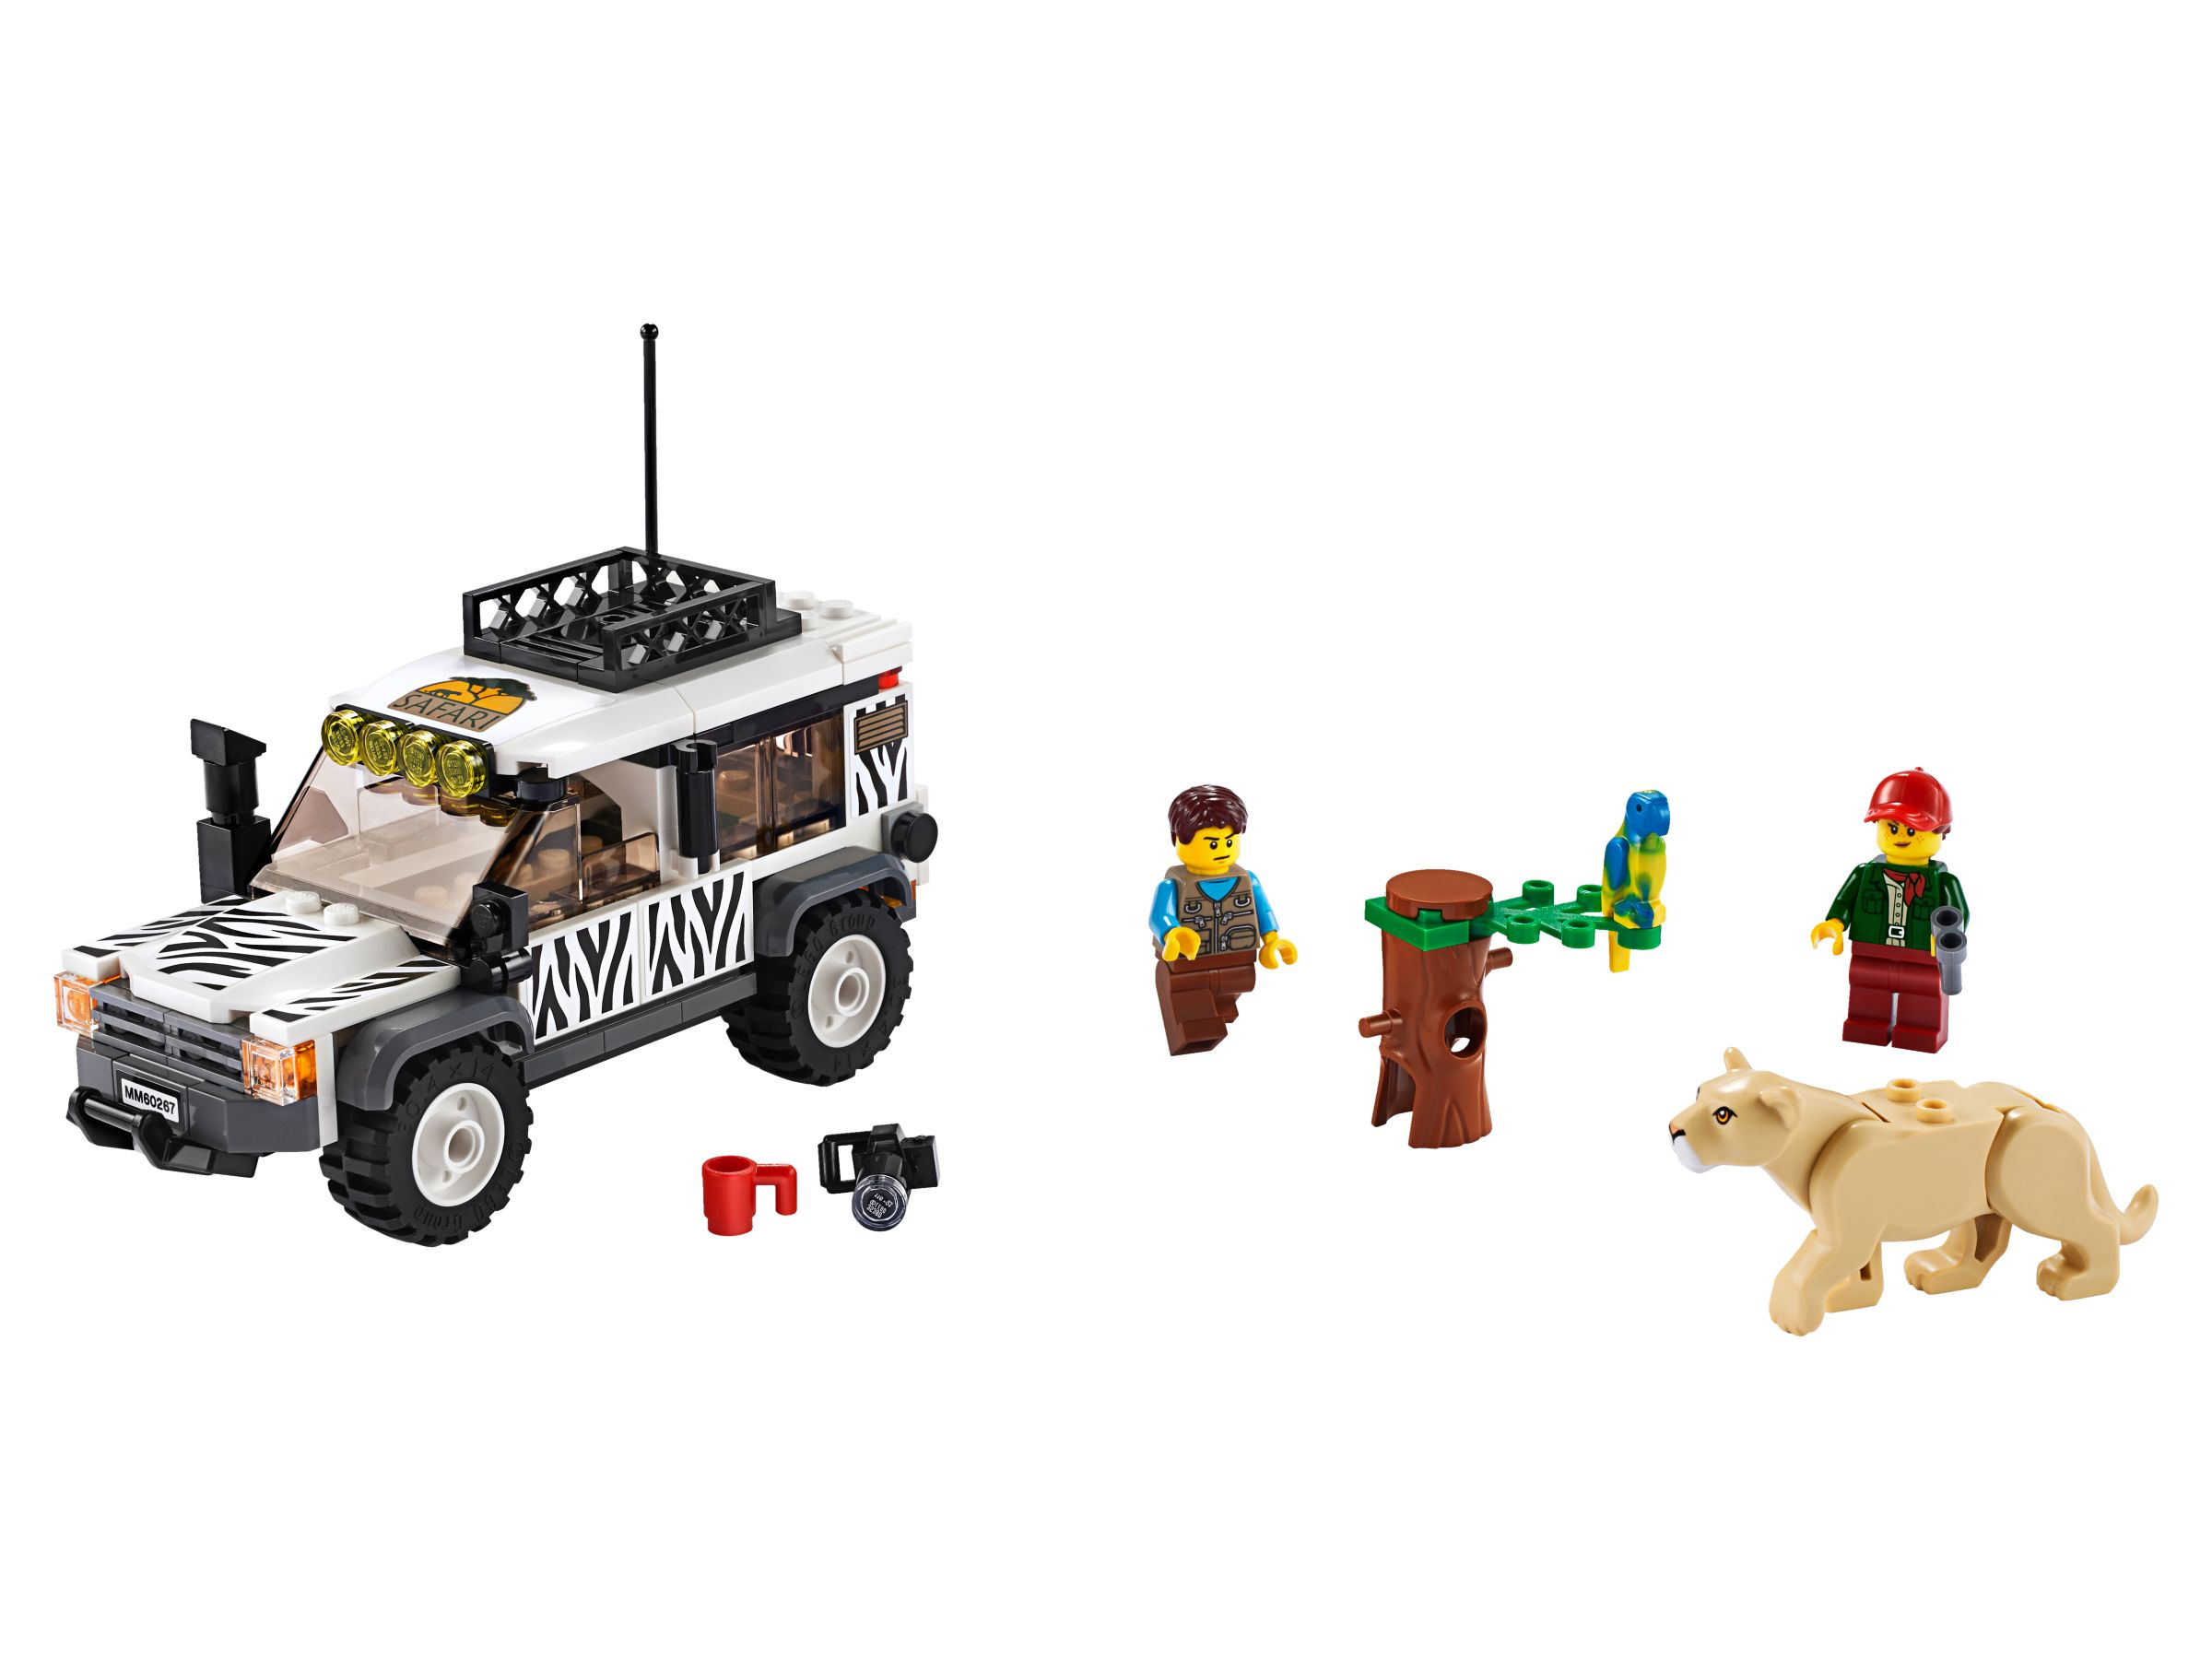 LEGO City 60267 Safari Adventure